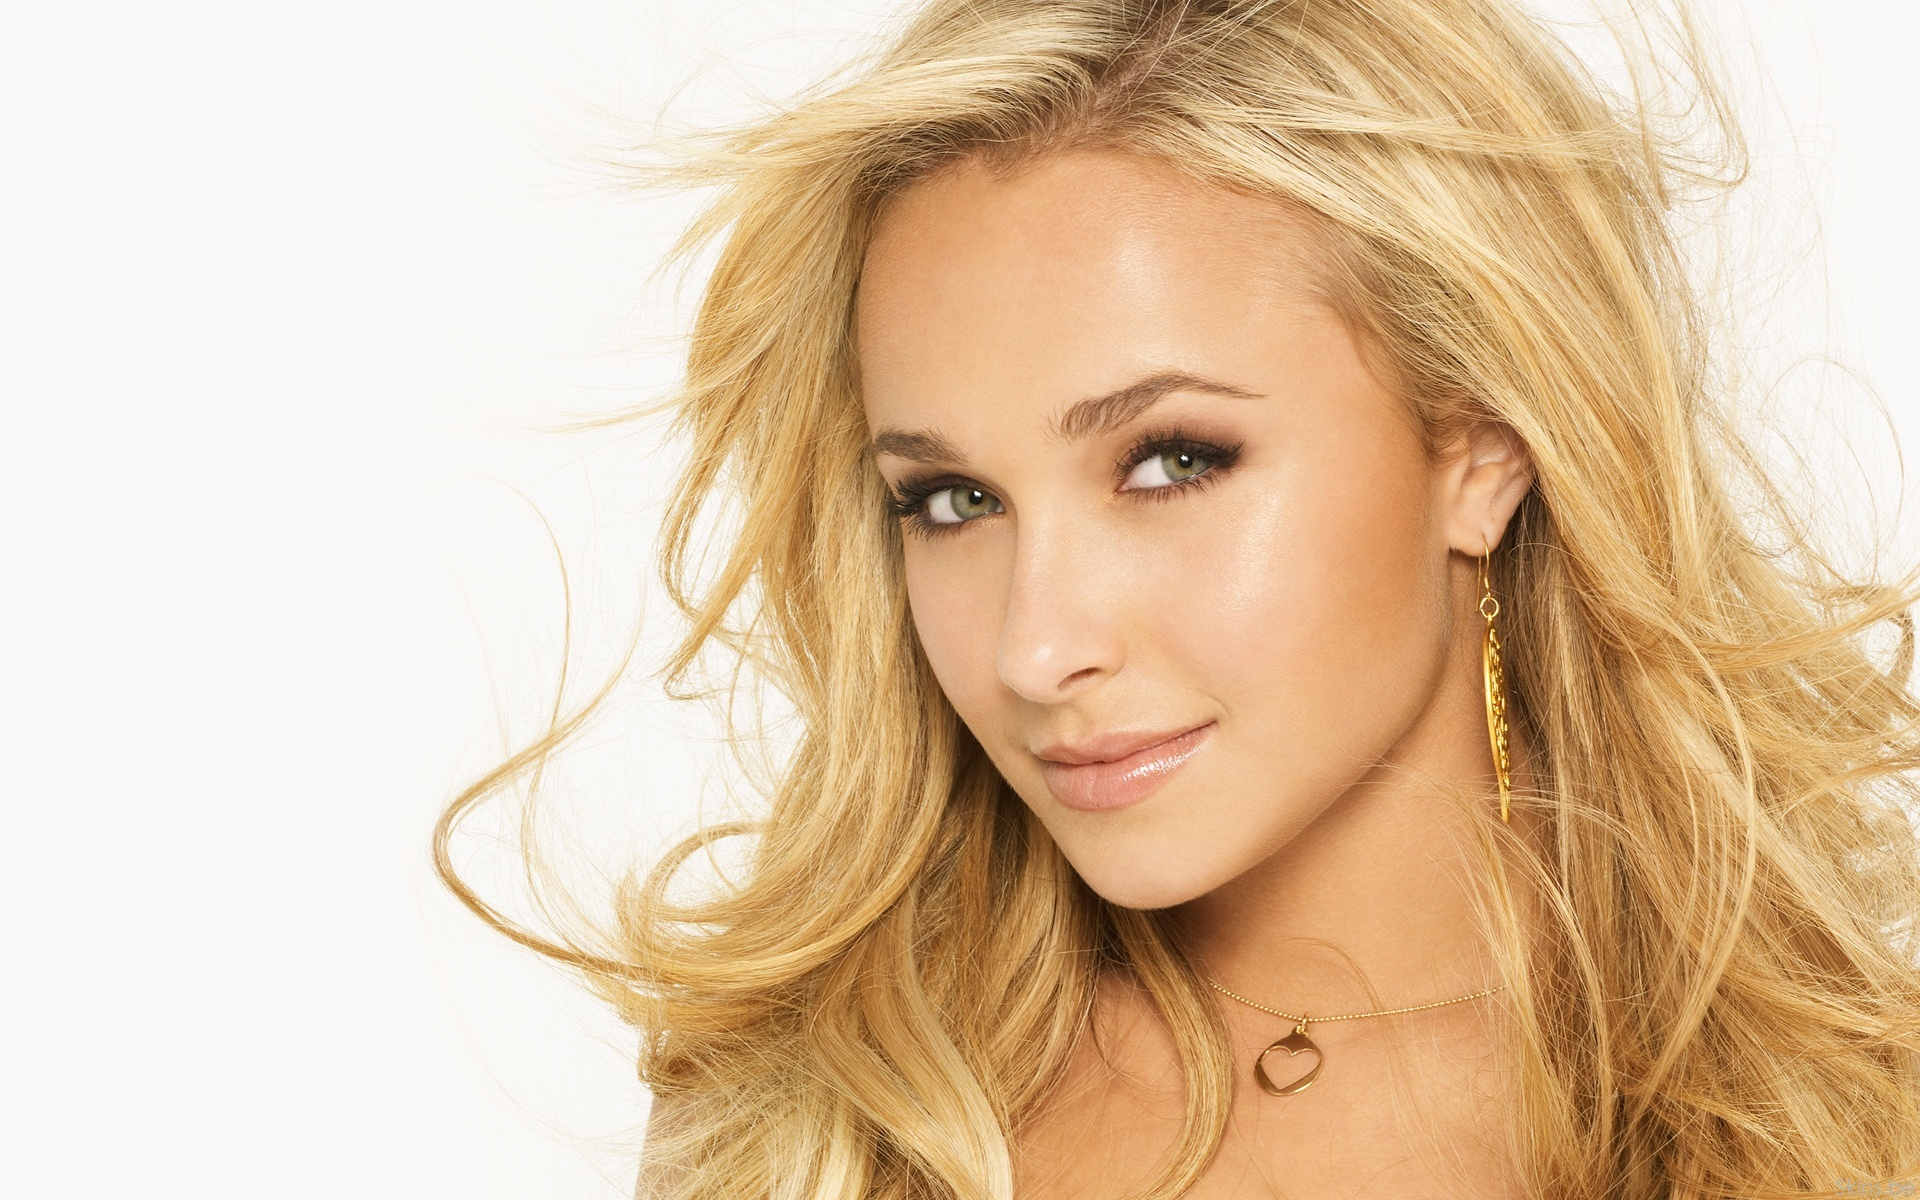 haydenpanettiere wallpapers hd A6